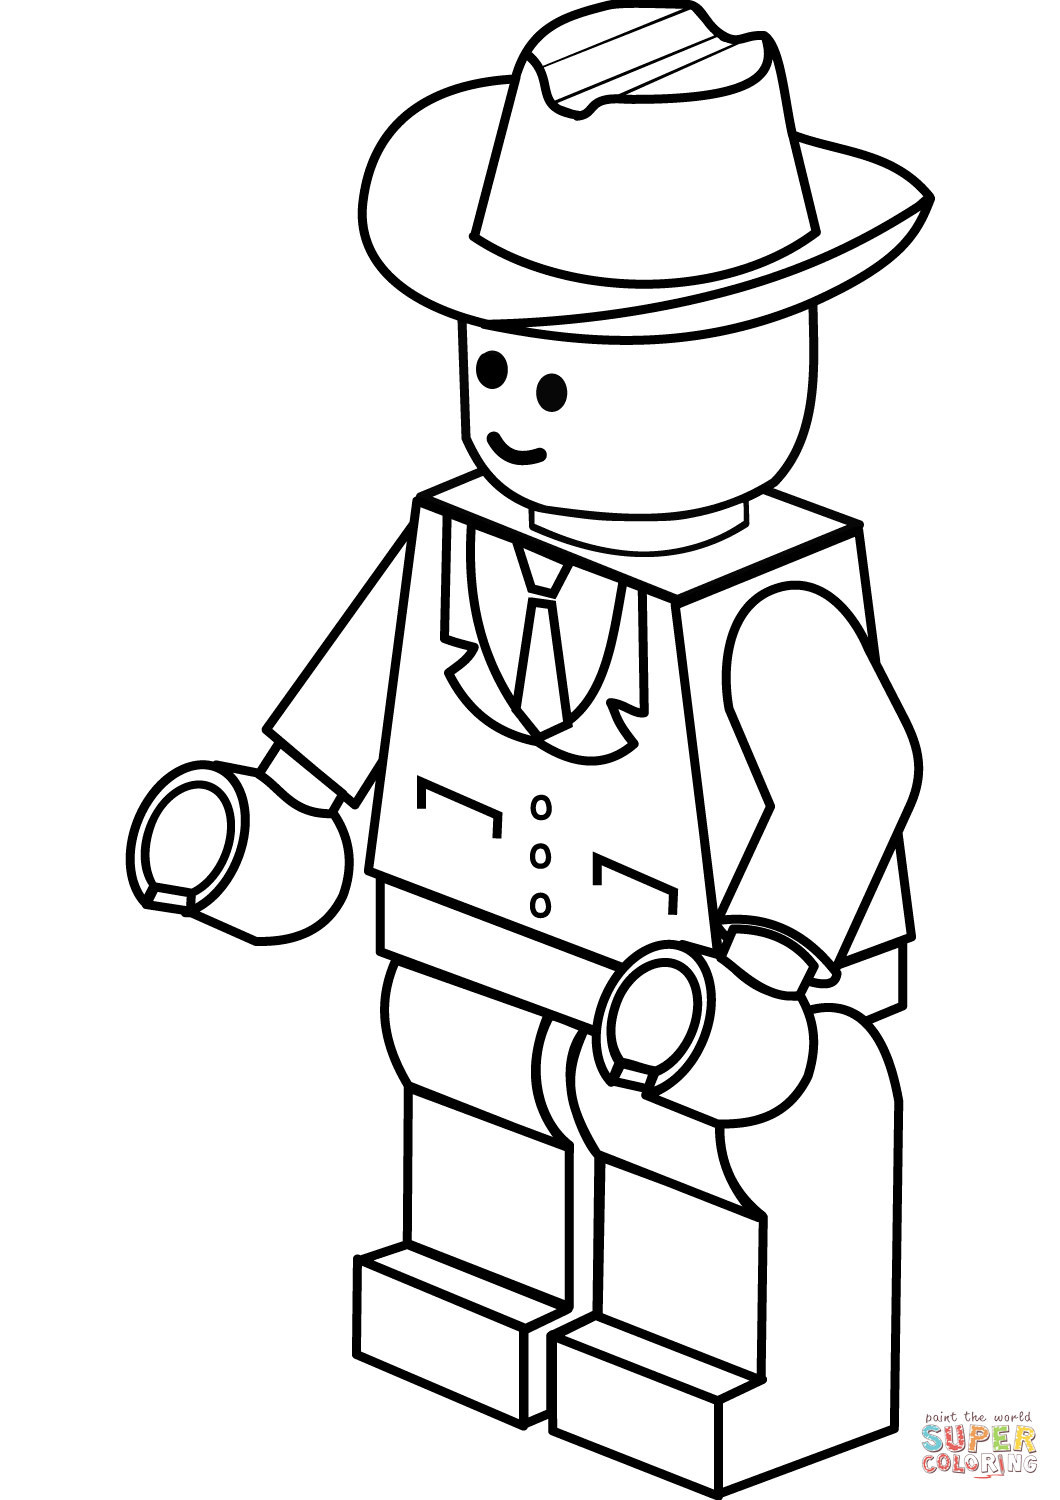 1060x1500 Lego Man In Cowboy Hat Coloring Page Free Printable Coloring Pages